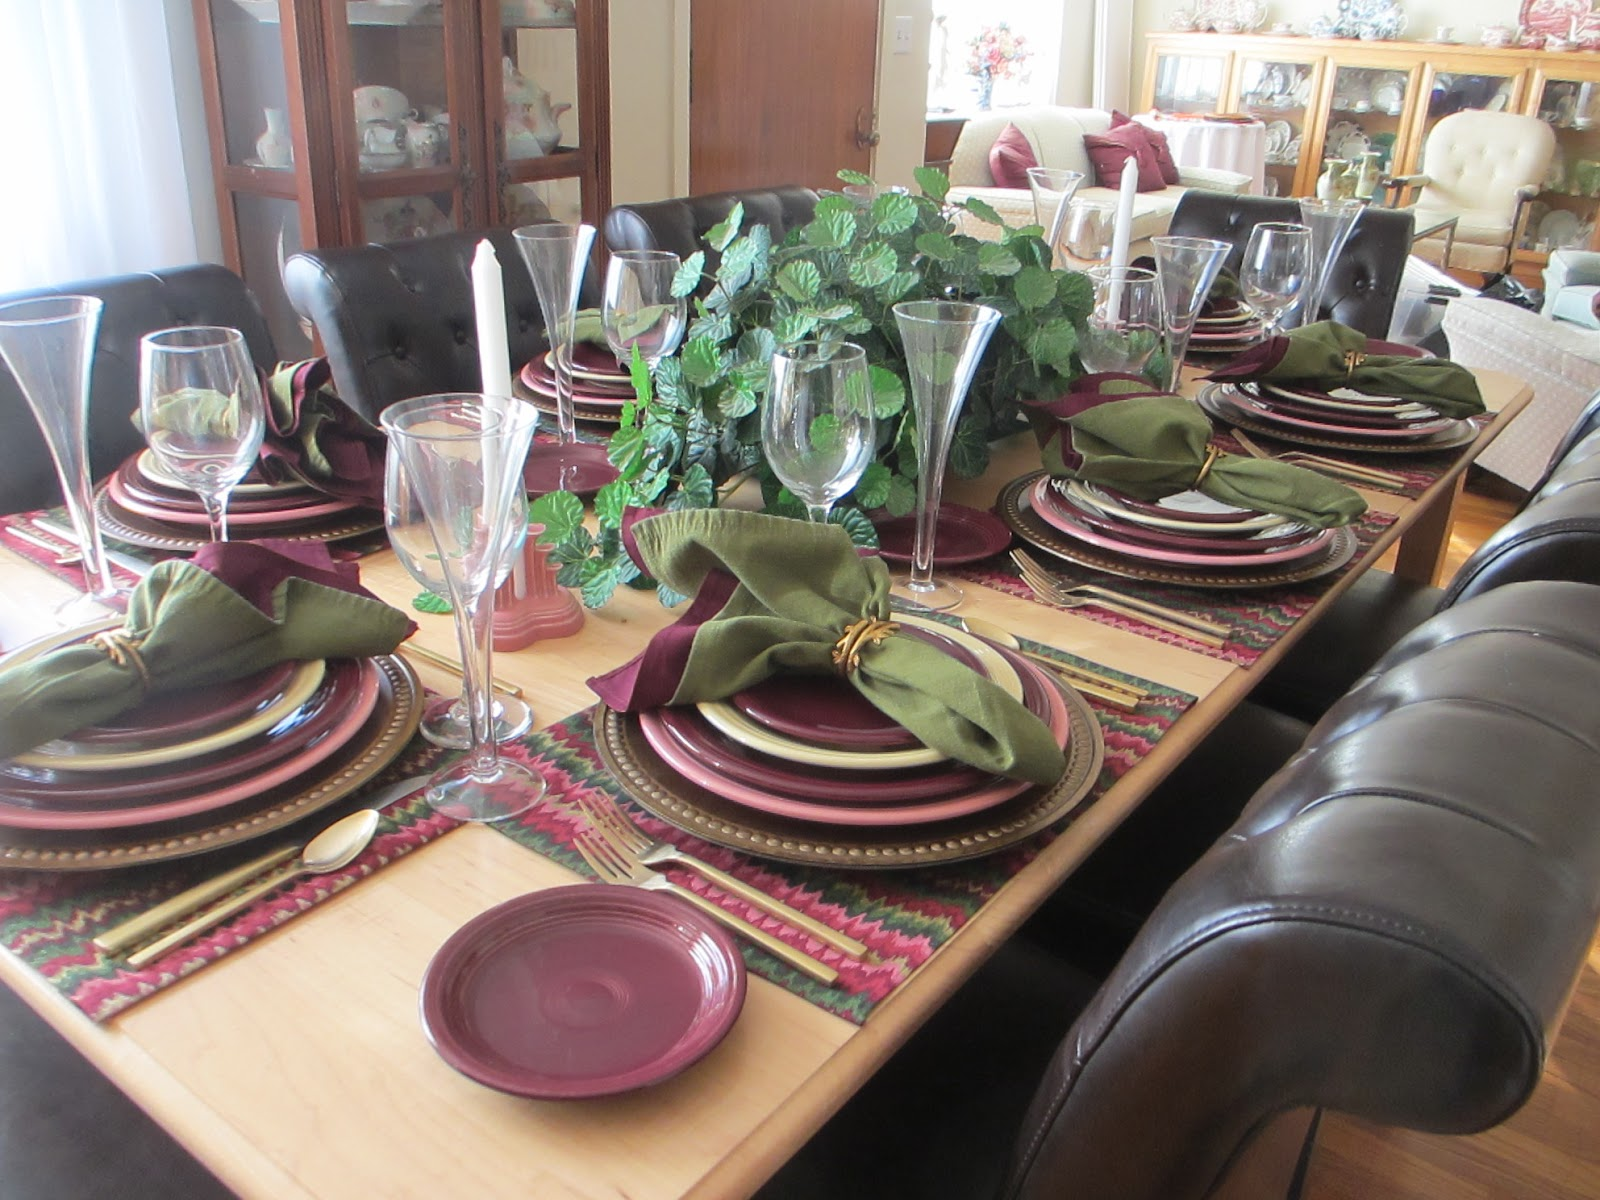 Since The Place Setting Was Quite Busy, Pat Used A Simple Arrangement Of  Greenery For The Centerpiece.